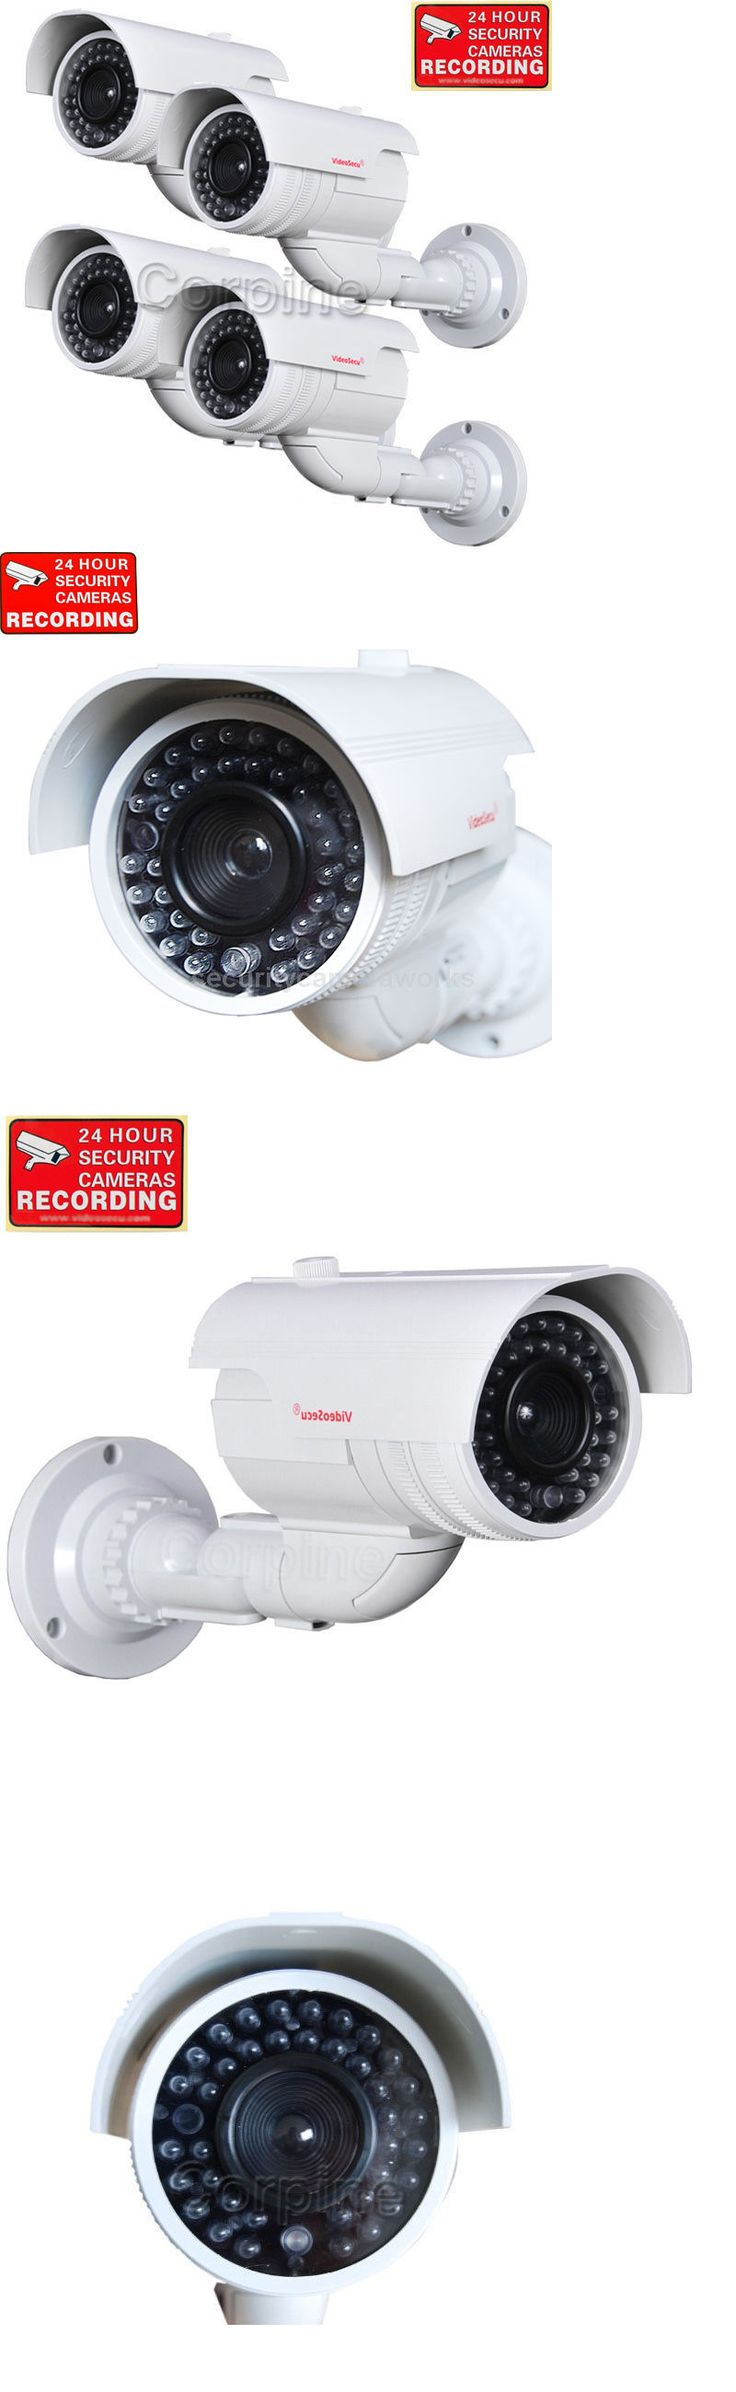 Dummy Cameras: 4X Dummy Security Cameras Fake Ir Leds Flashing Light Cctv Surveillance Home Wqc -> BUY IT NOW ONLY: $62.9 on eBay!